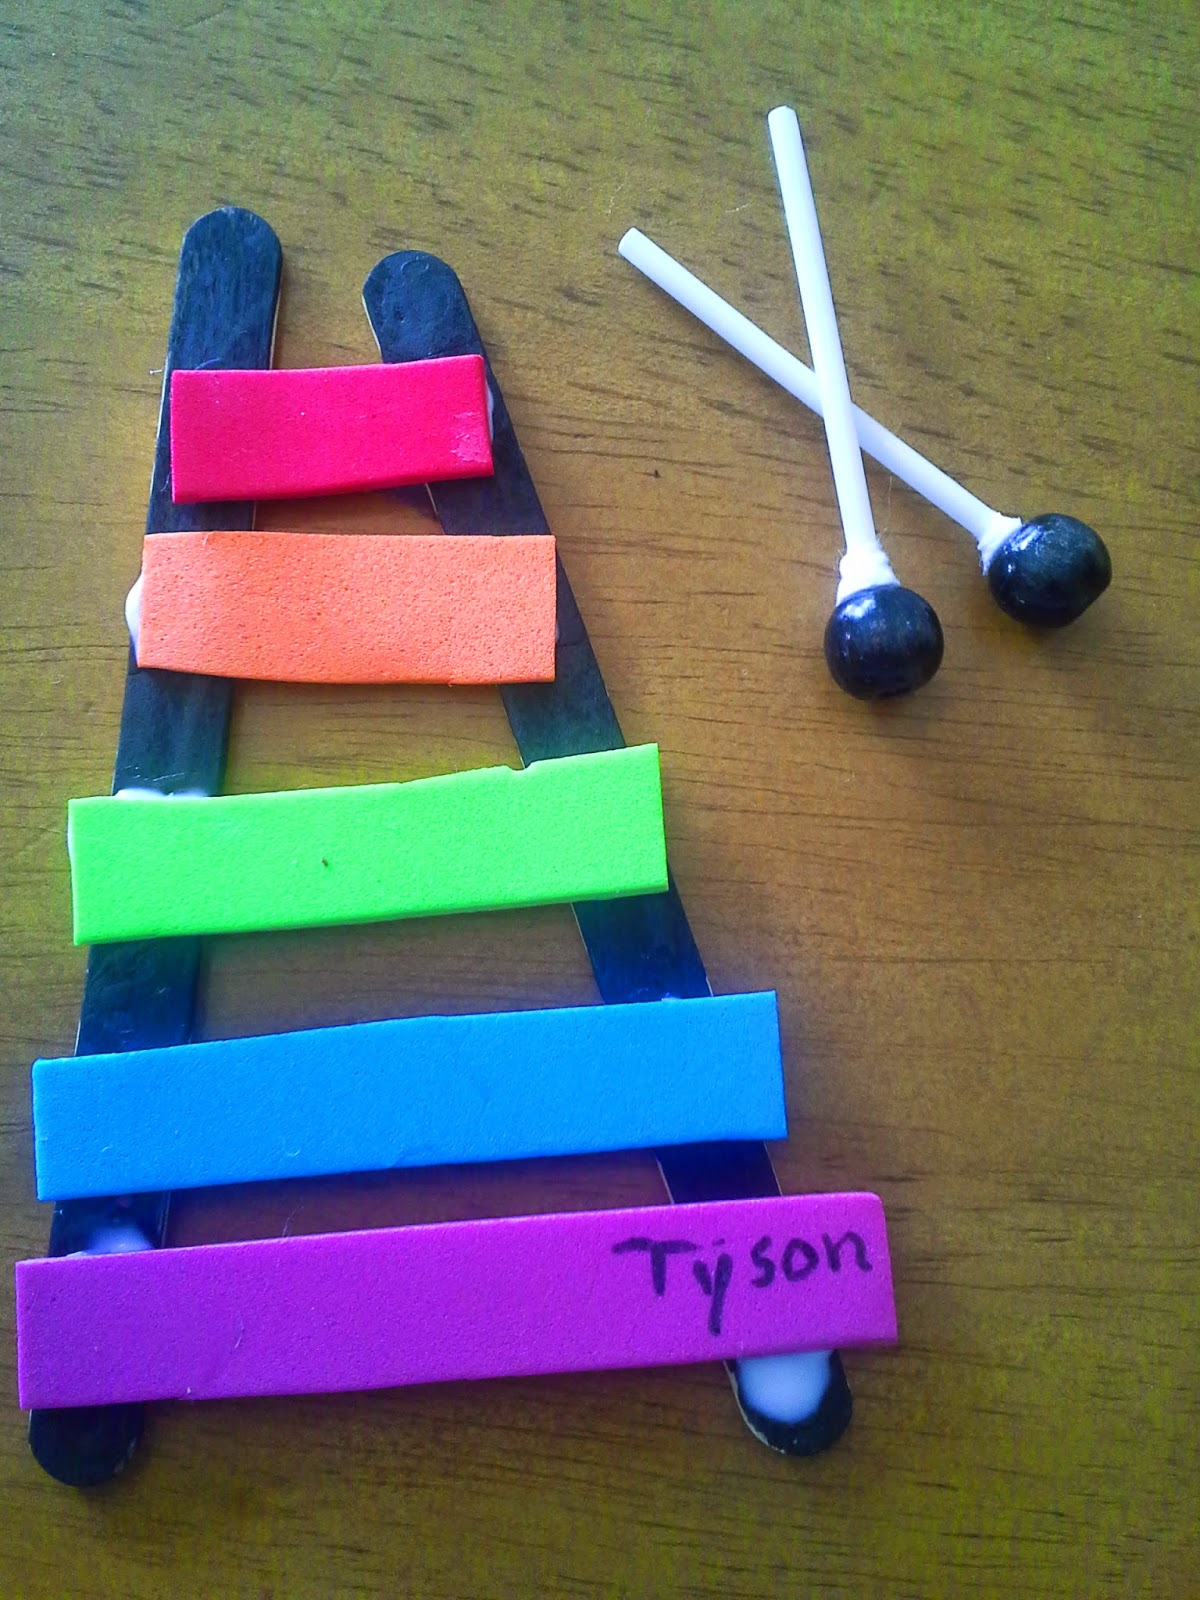 Example of a student's handmade xylophone, using popsicle sticks and foam.